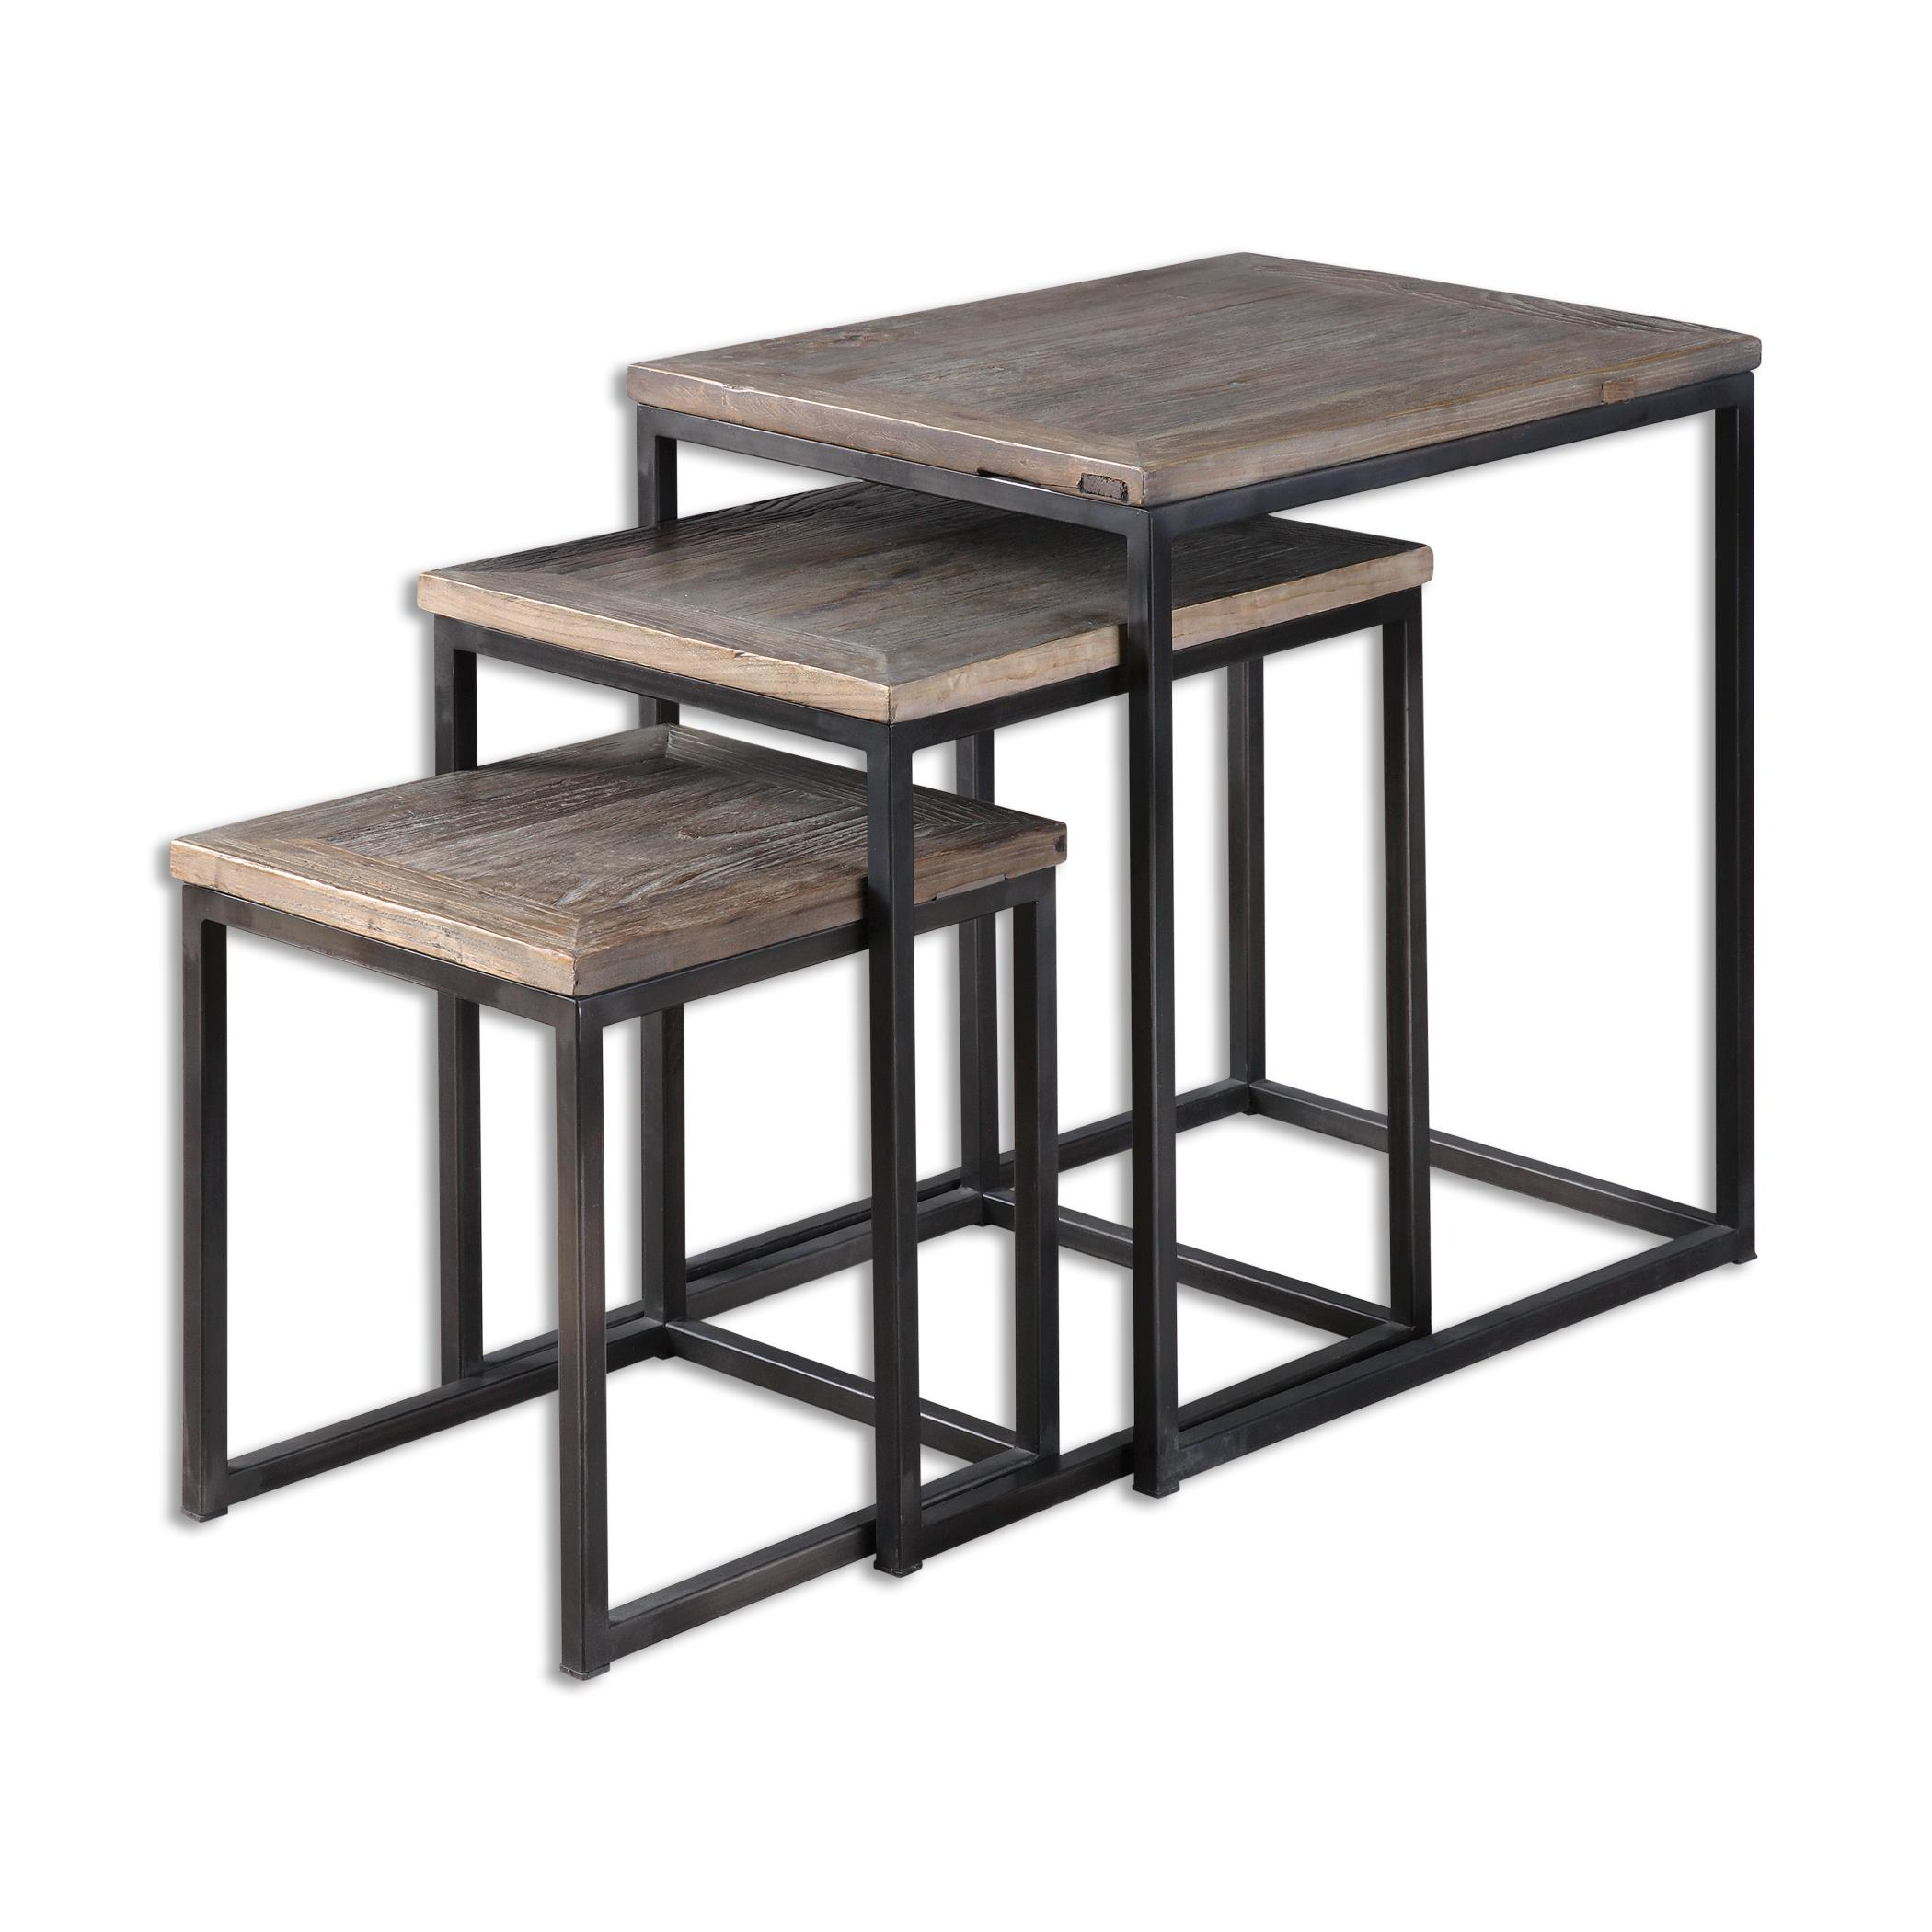 Accent Furniture - Occasional Tables Bomani Wood Nesting Tables Set/3 by Uttermost at Mueller Furniture